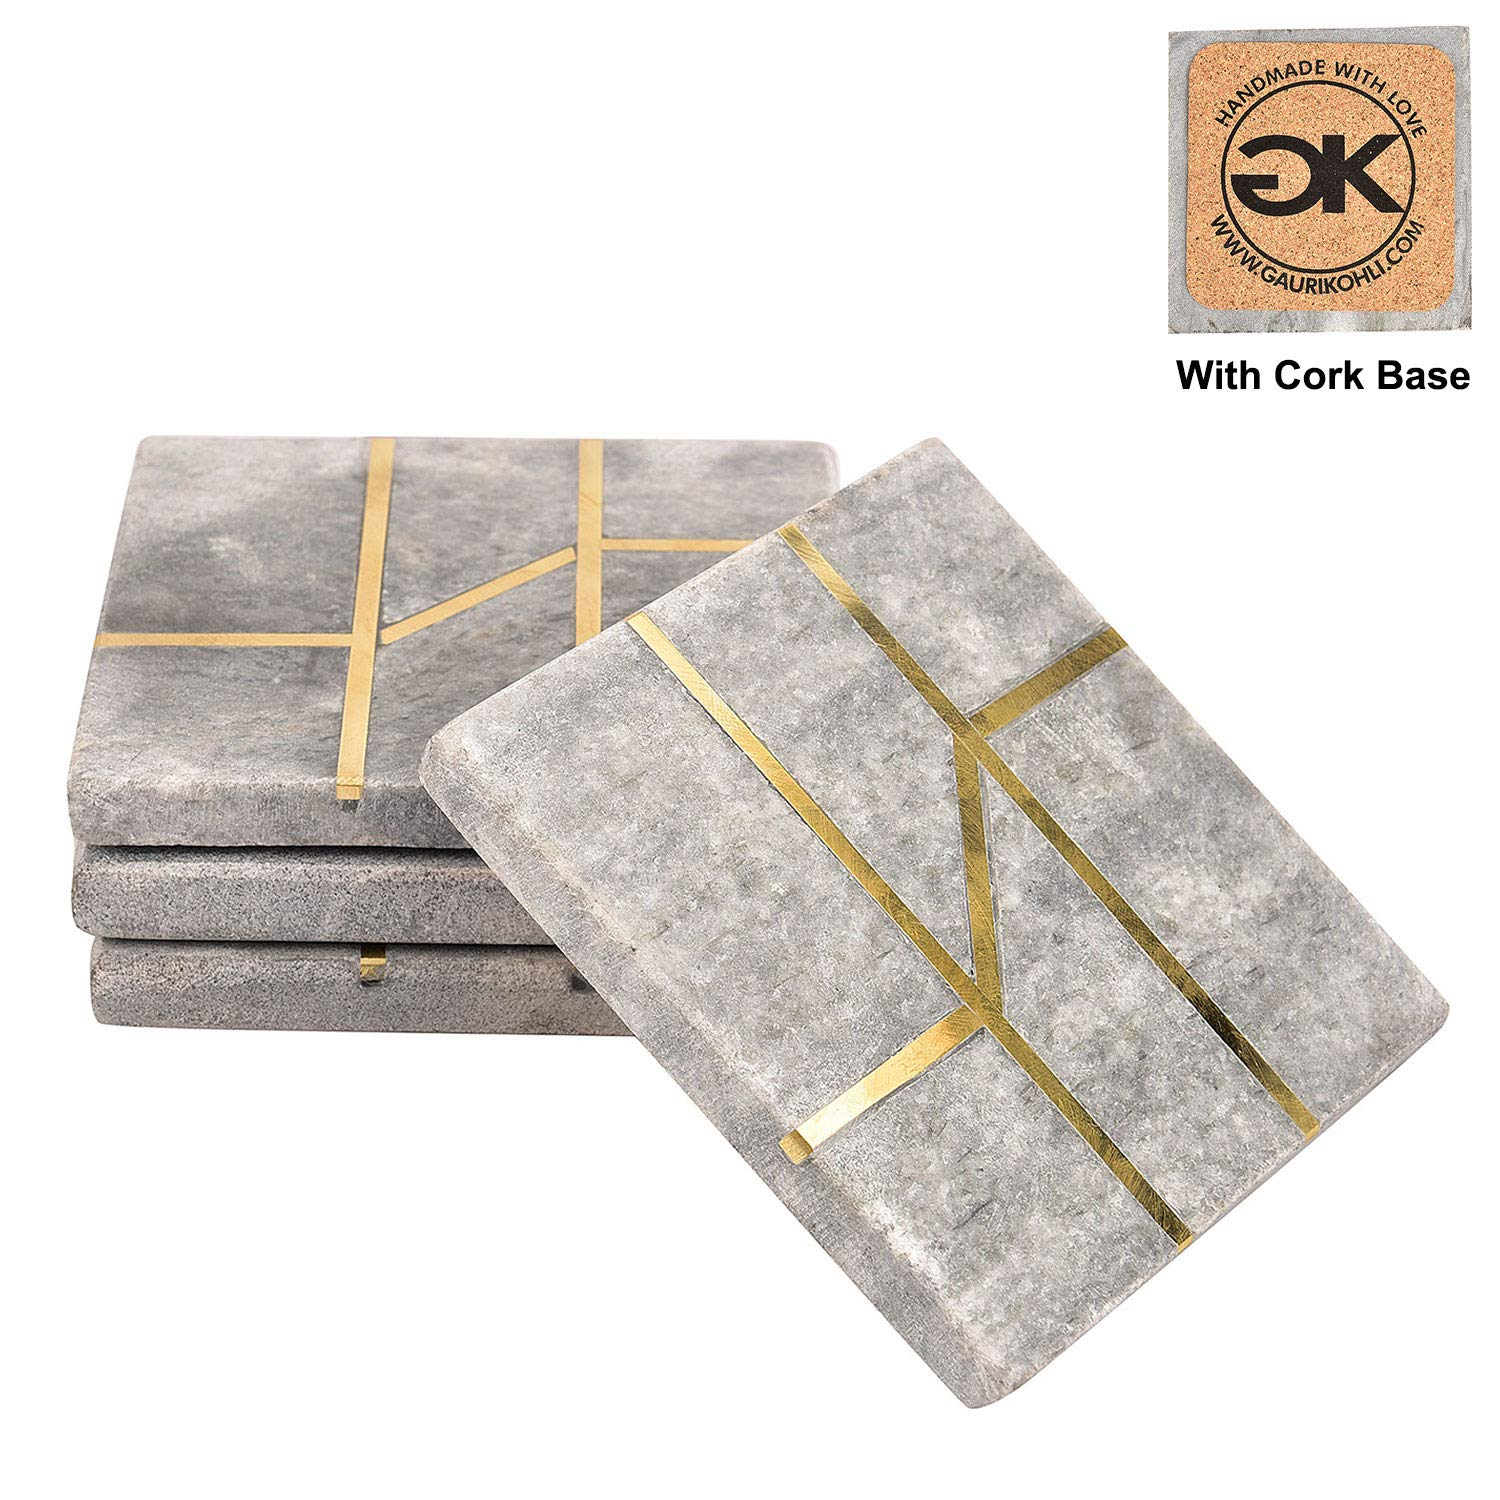 GAURI KOHLI Rustic Ocean Gray Marble Coasters With Cork Bottom; Embellished With Luxurious Gold Inlay (Large Size | Set of 4)